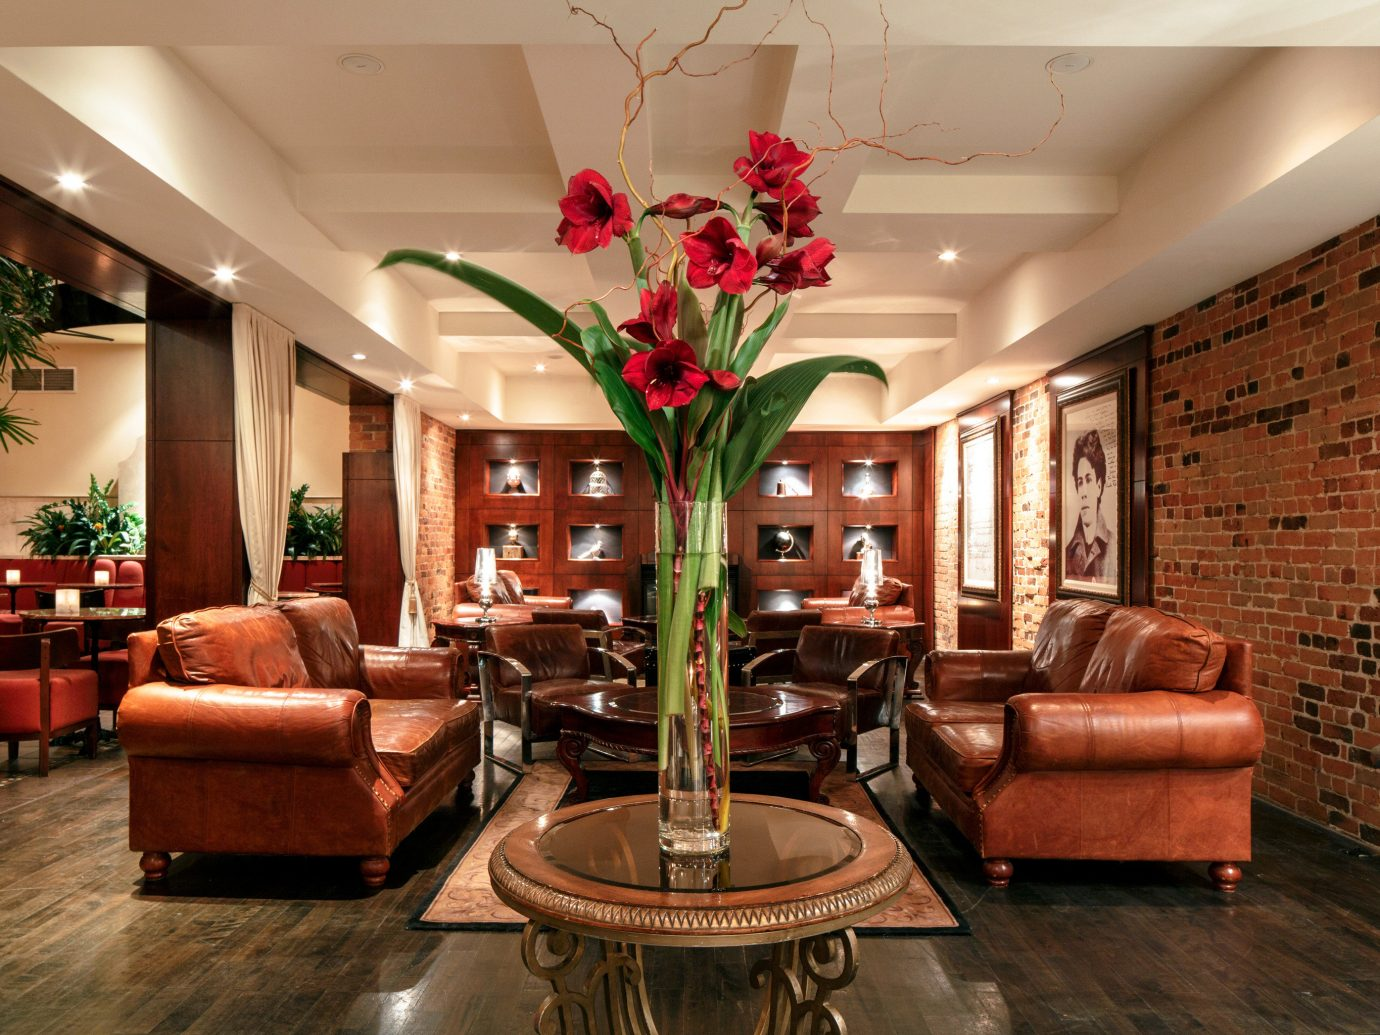 Living Lobby Lounge Luxury Trip Ideas Weekend Getaways Winter indoor floor wall ceiling room dining room living room property furniture estate home interior design hardwood Fireplace real estate plant Design mansion window covering area stone leather wood